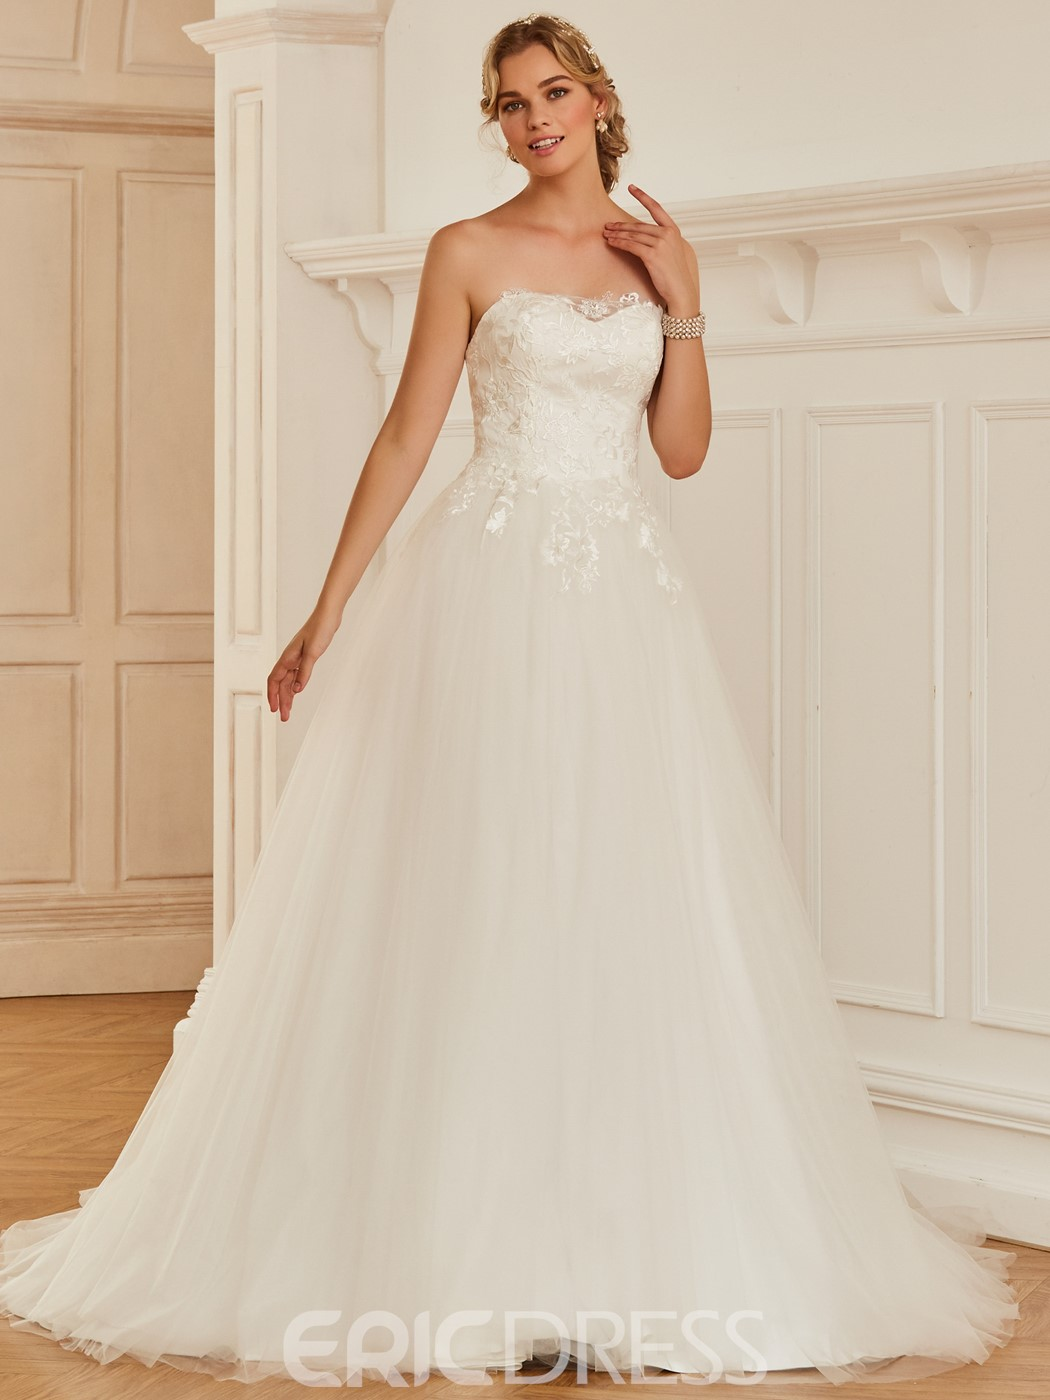 Ericdress Strapless Appliques Ball Gown Tulle Wedding Dress